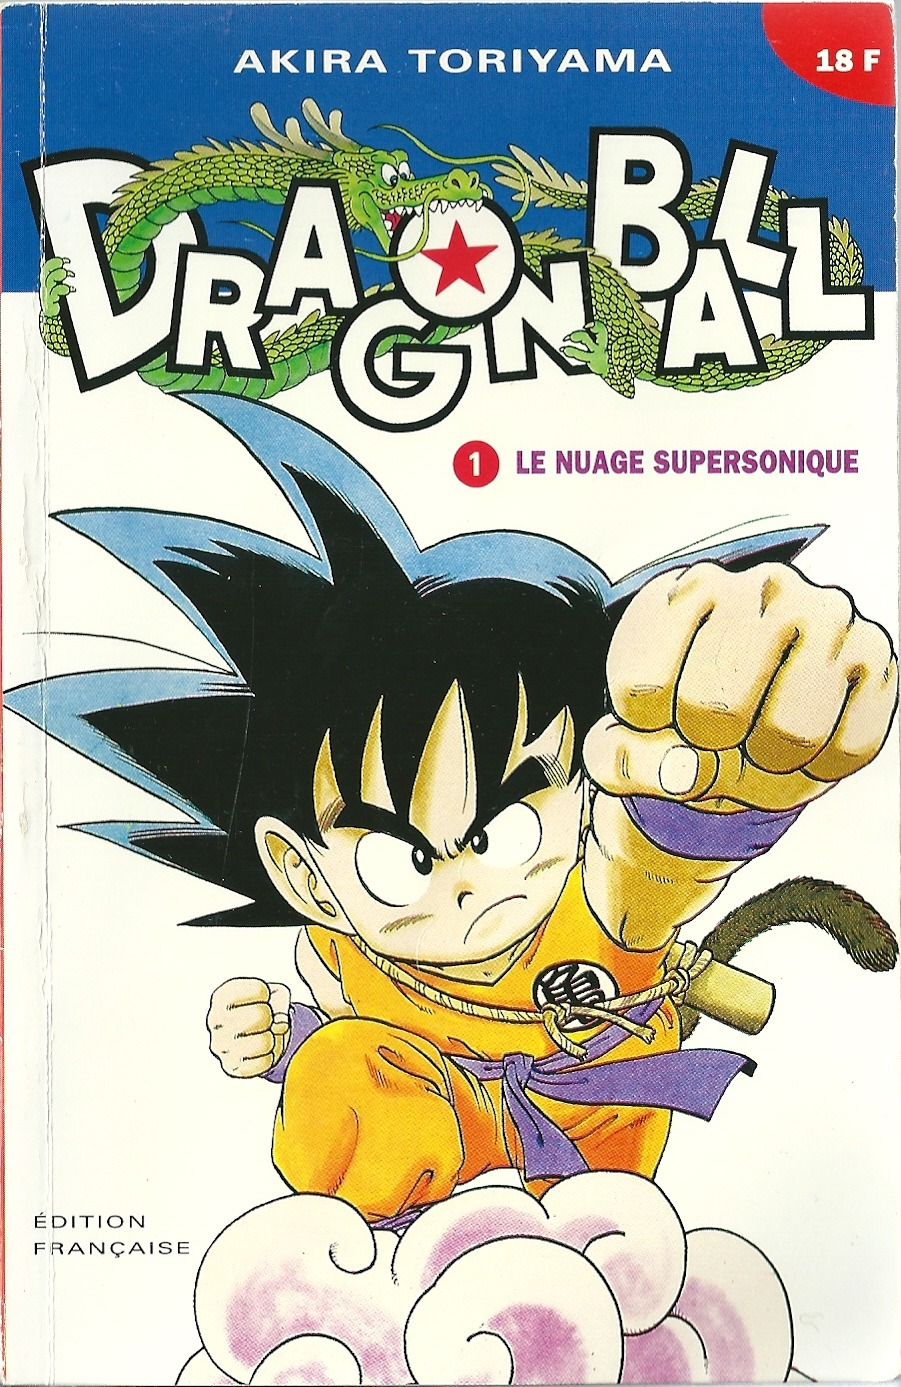 Shonen Dragon Ball